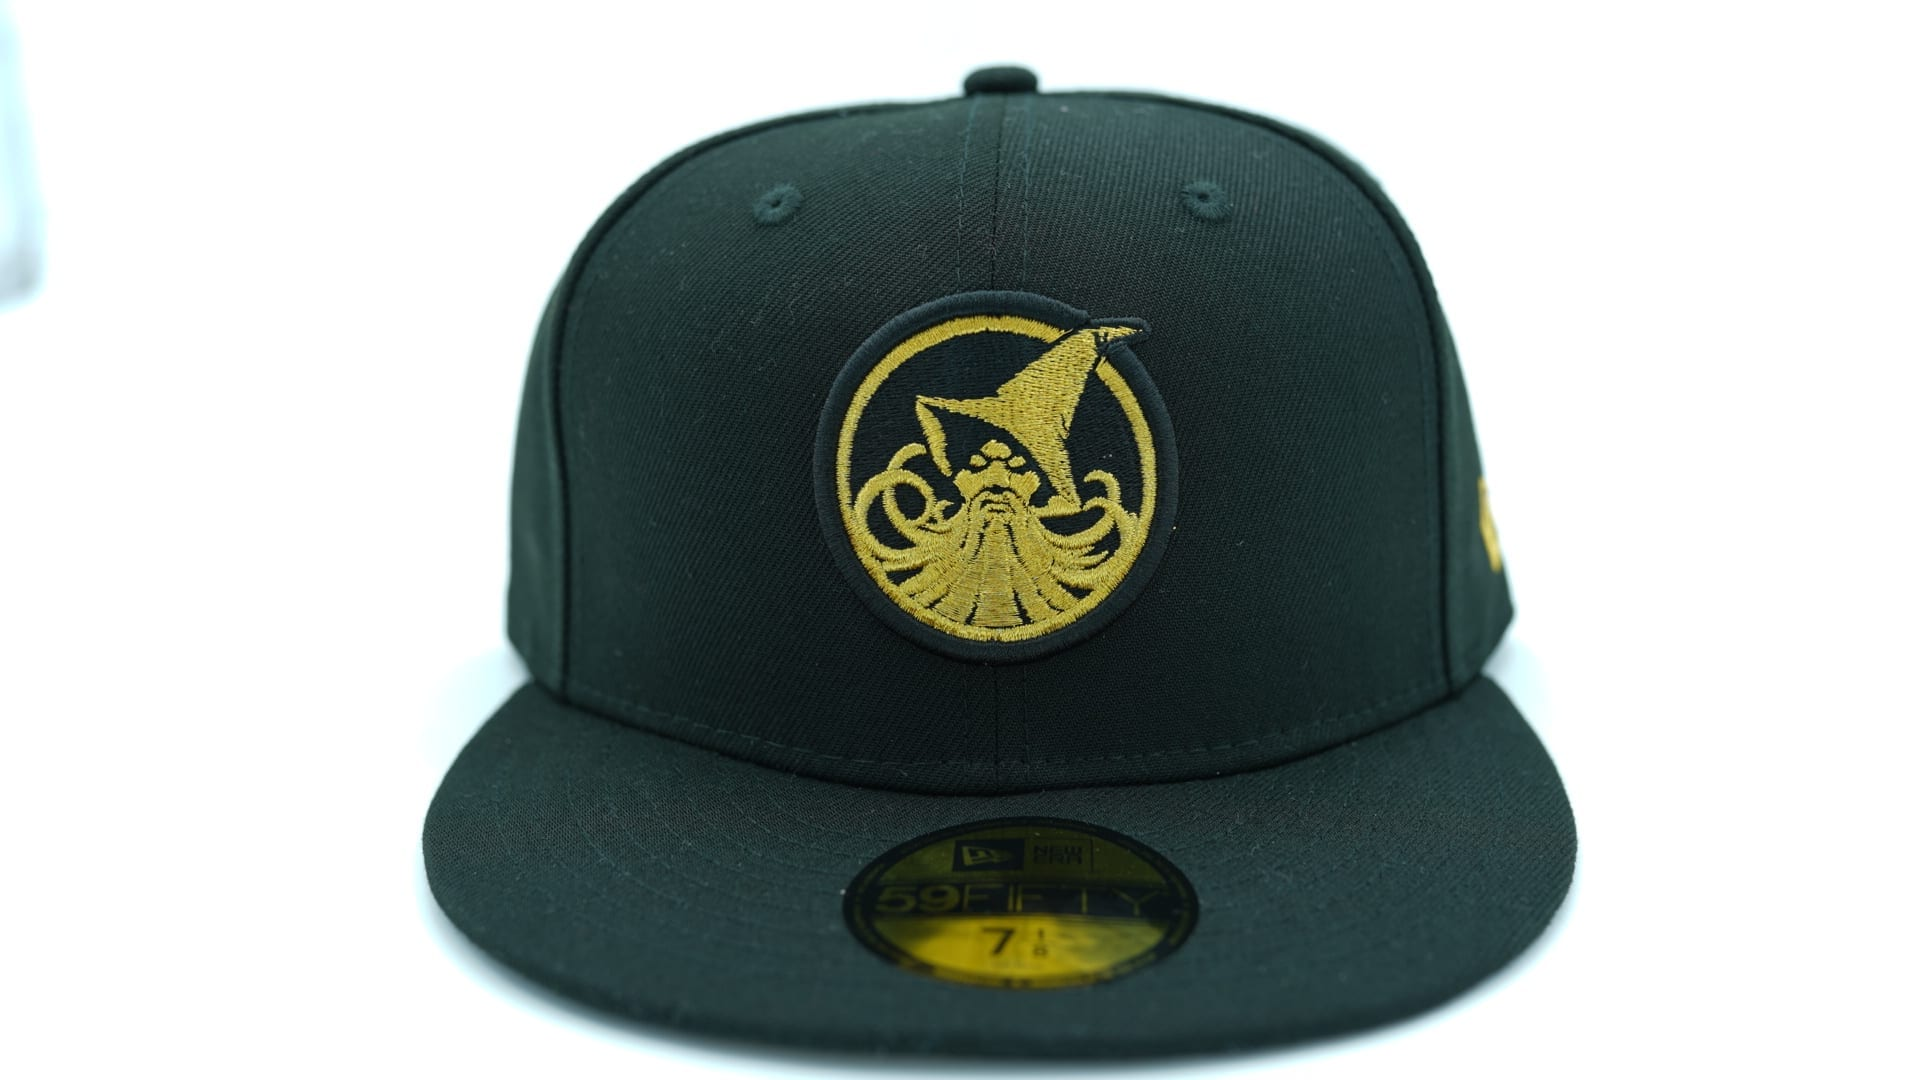 Tigres UNAL Reflective 59Fifty Fitted Cap by NEW ER x LMB